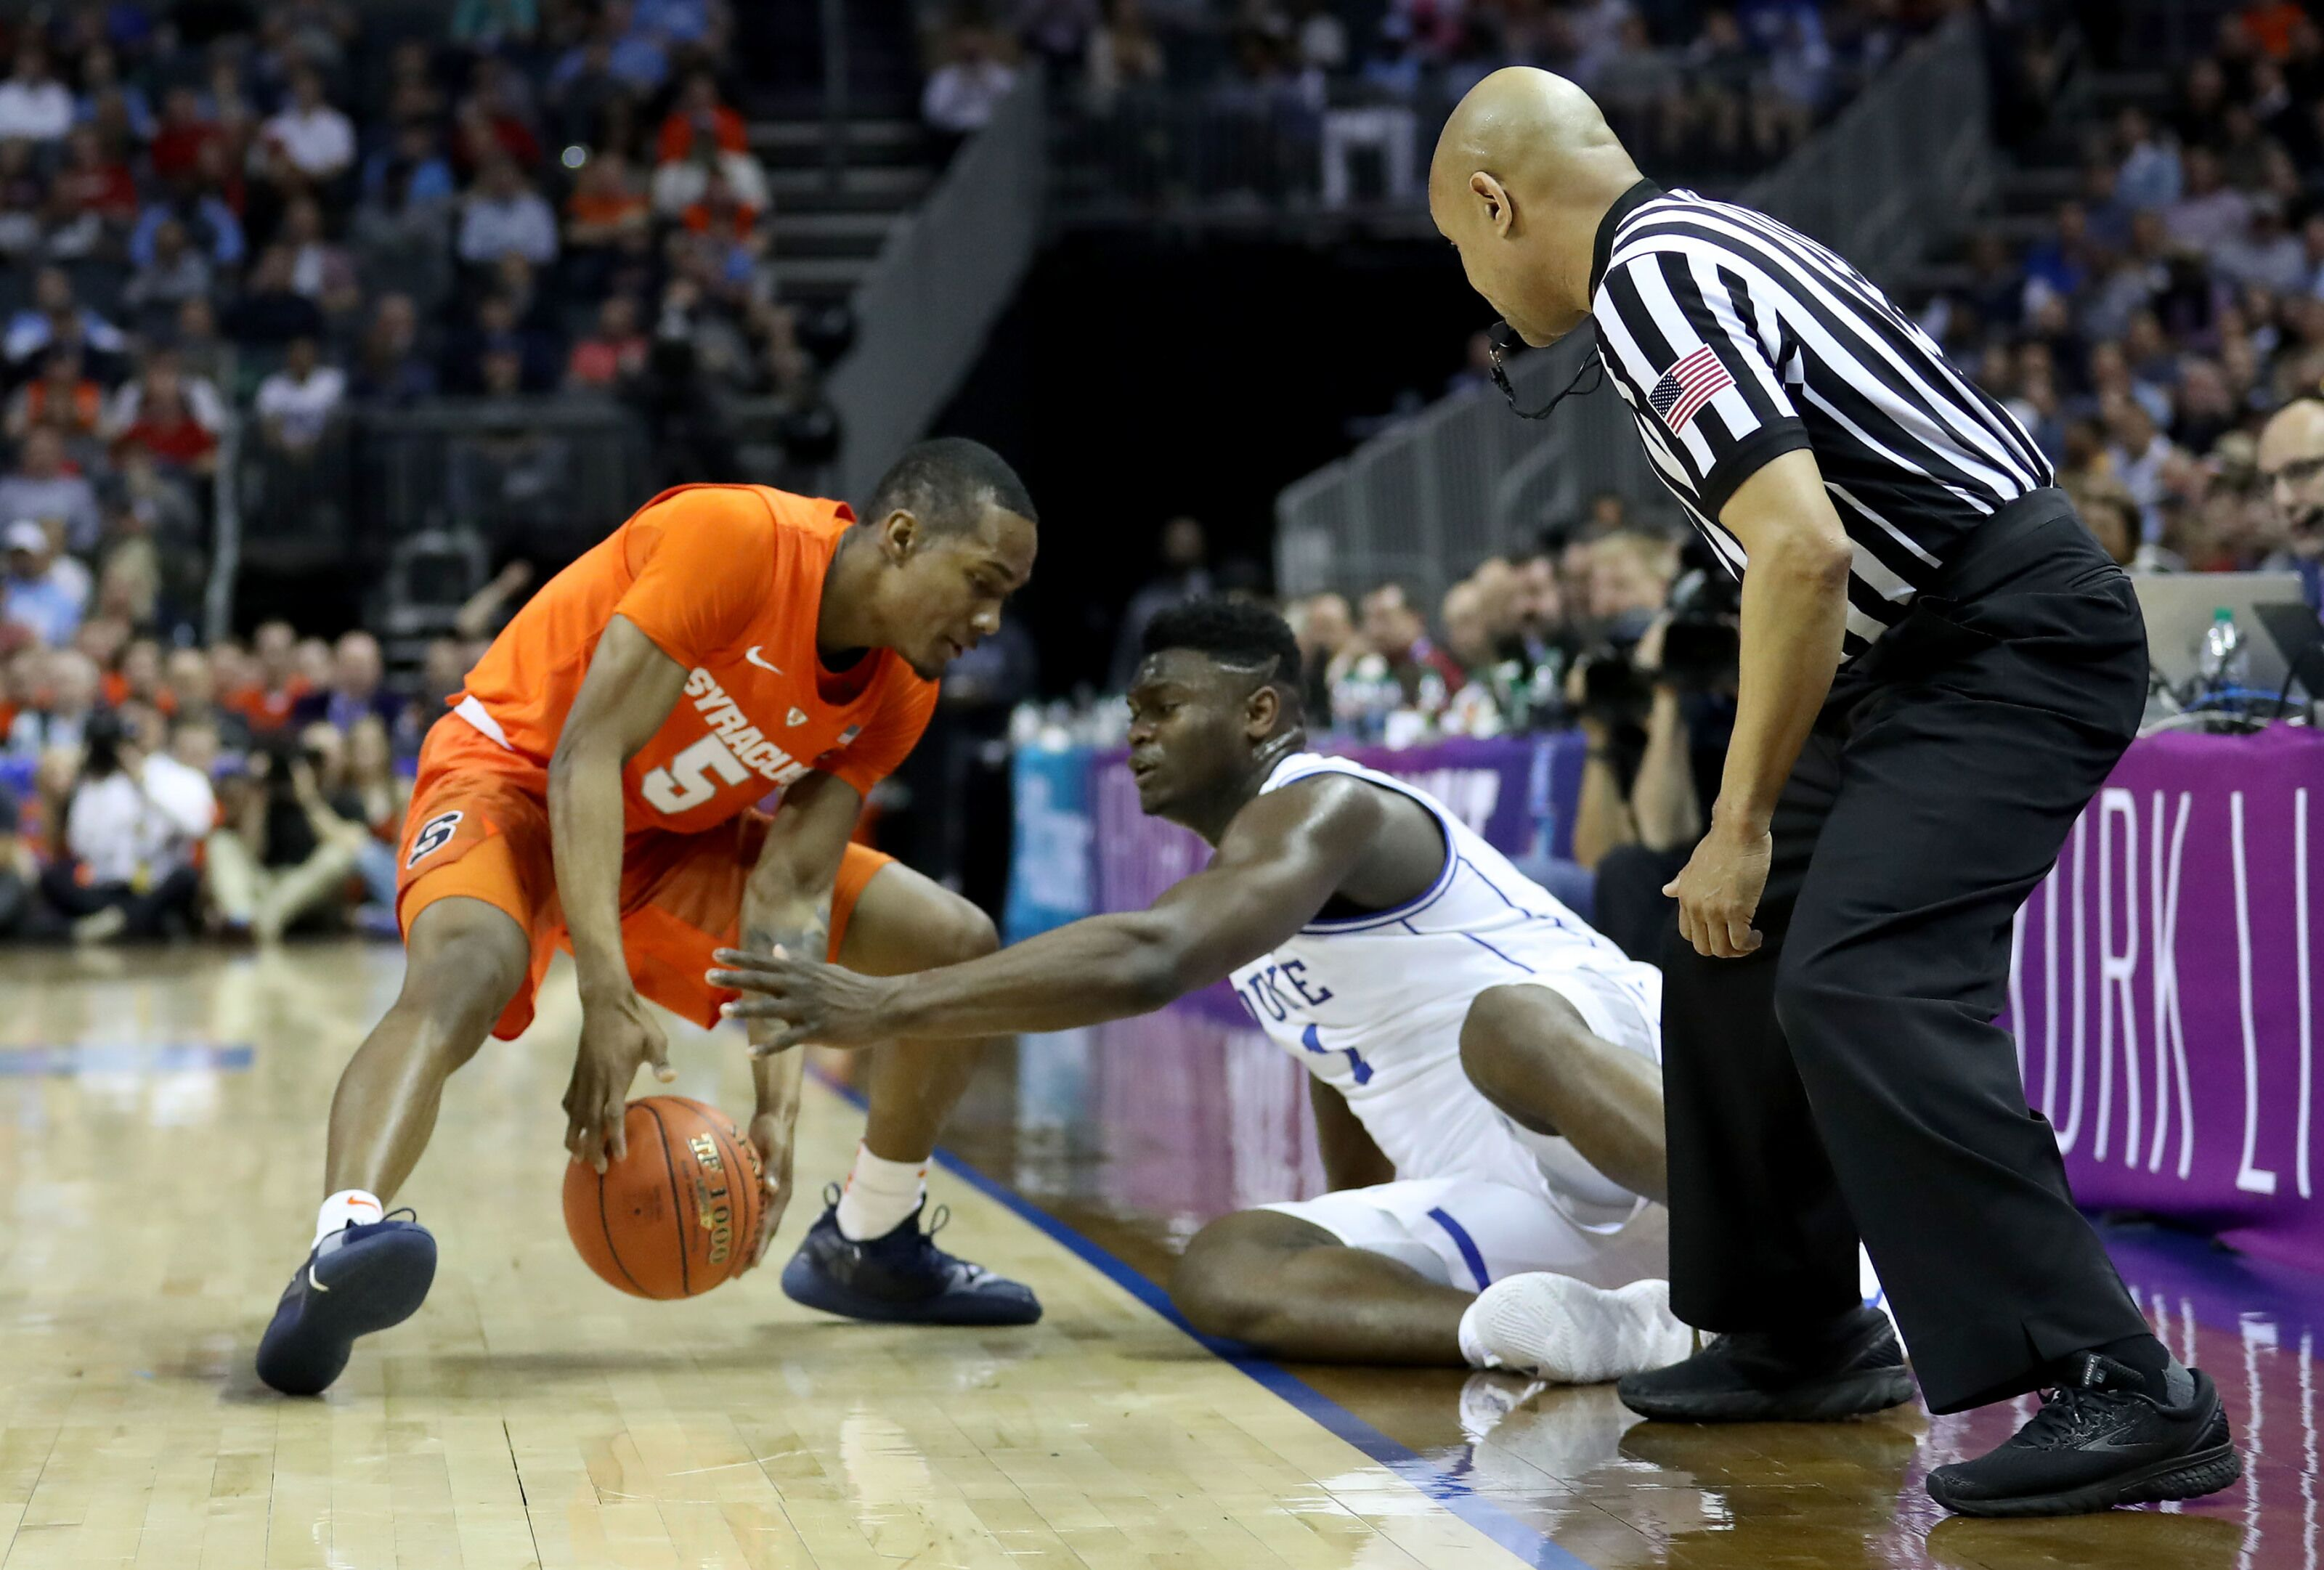 Syracuse Basketball: Lack of star power will force Orange to play team ball